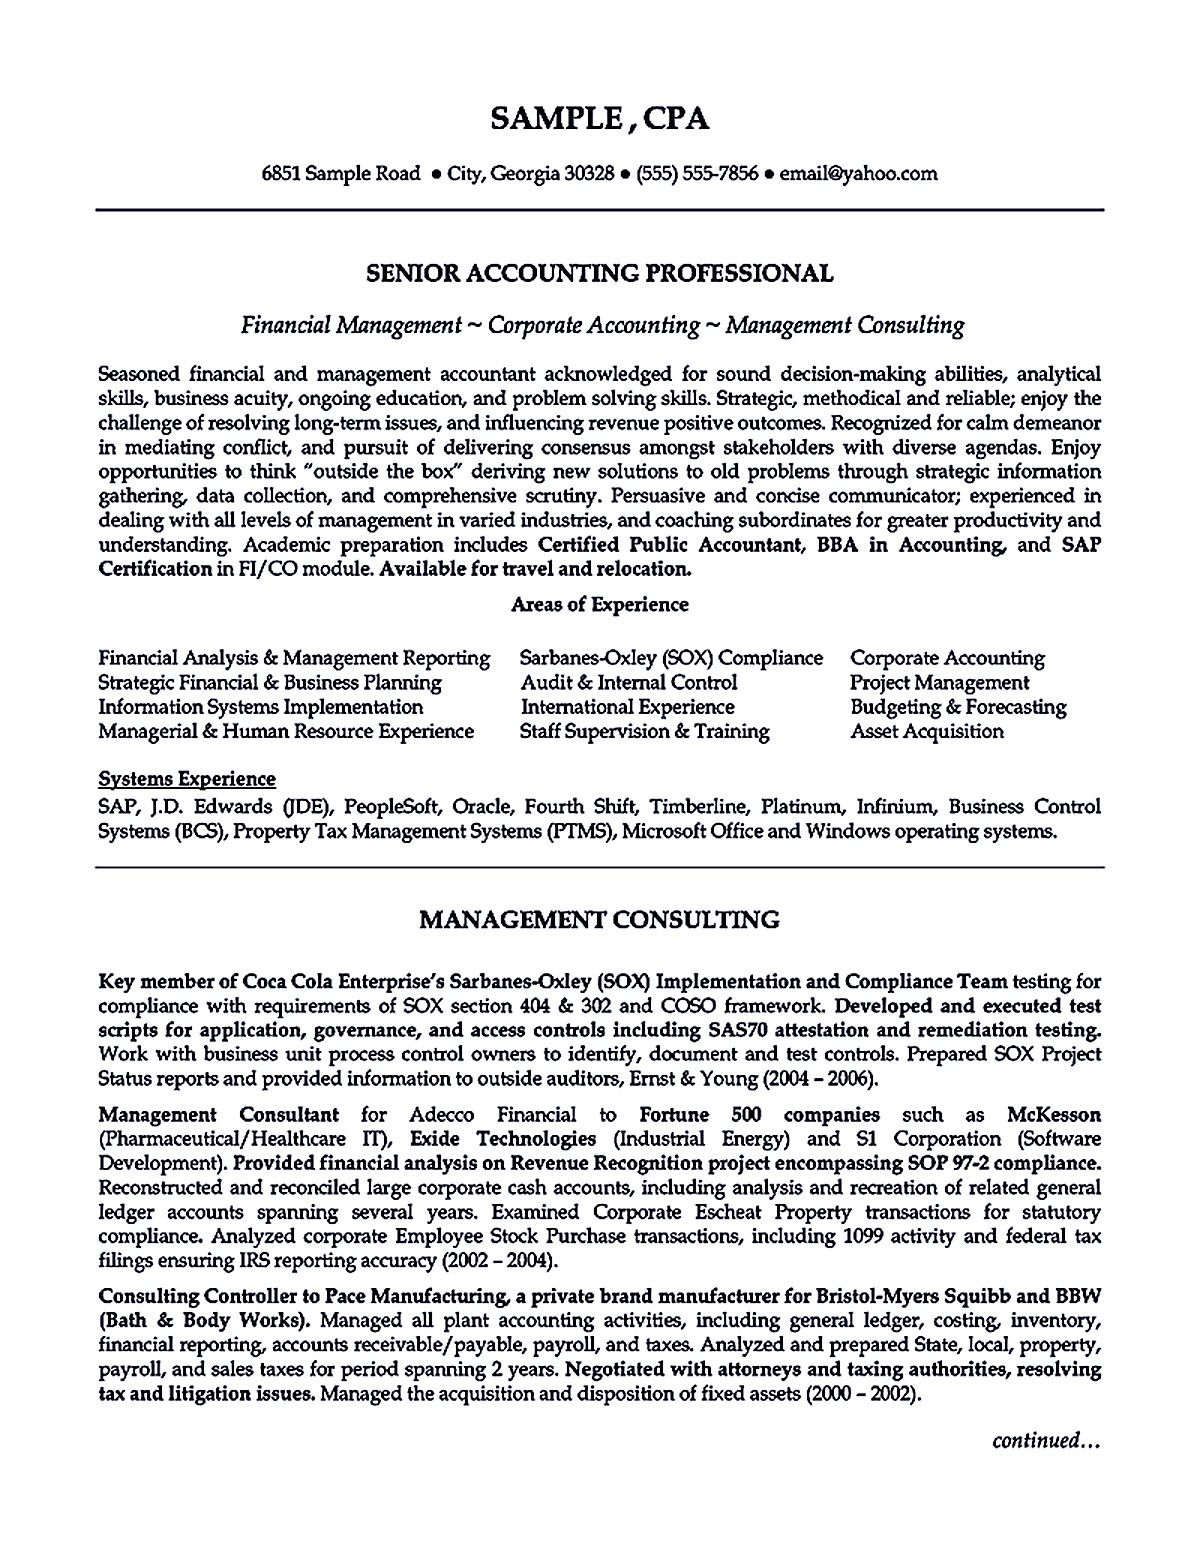 Outstanding Accountant Resume Sample For Junior And Senior Accountant Resume Cover Letter For Resume Job Resume Template